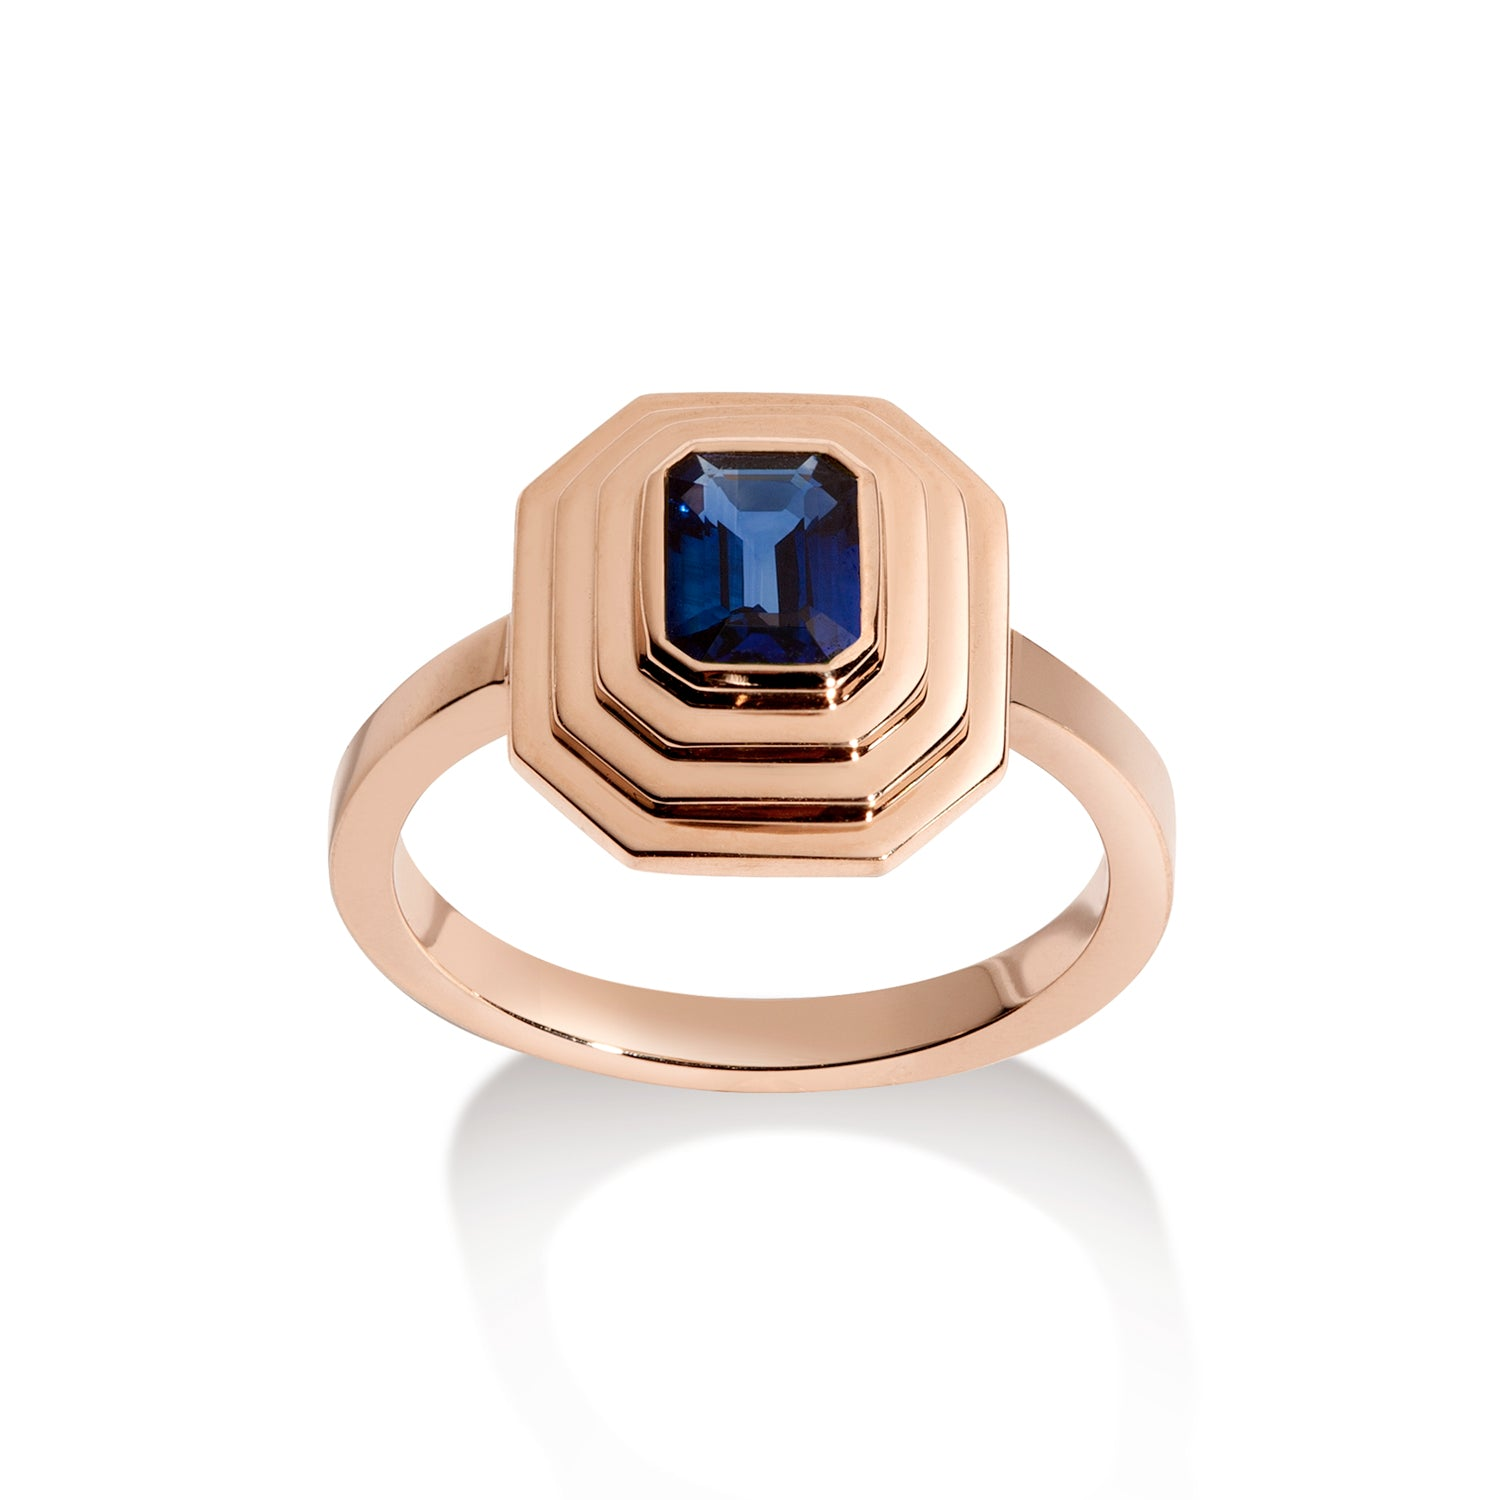 Isabelle Ring - Sapphire